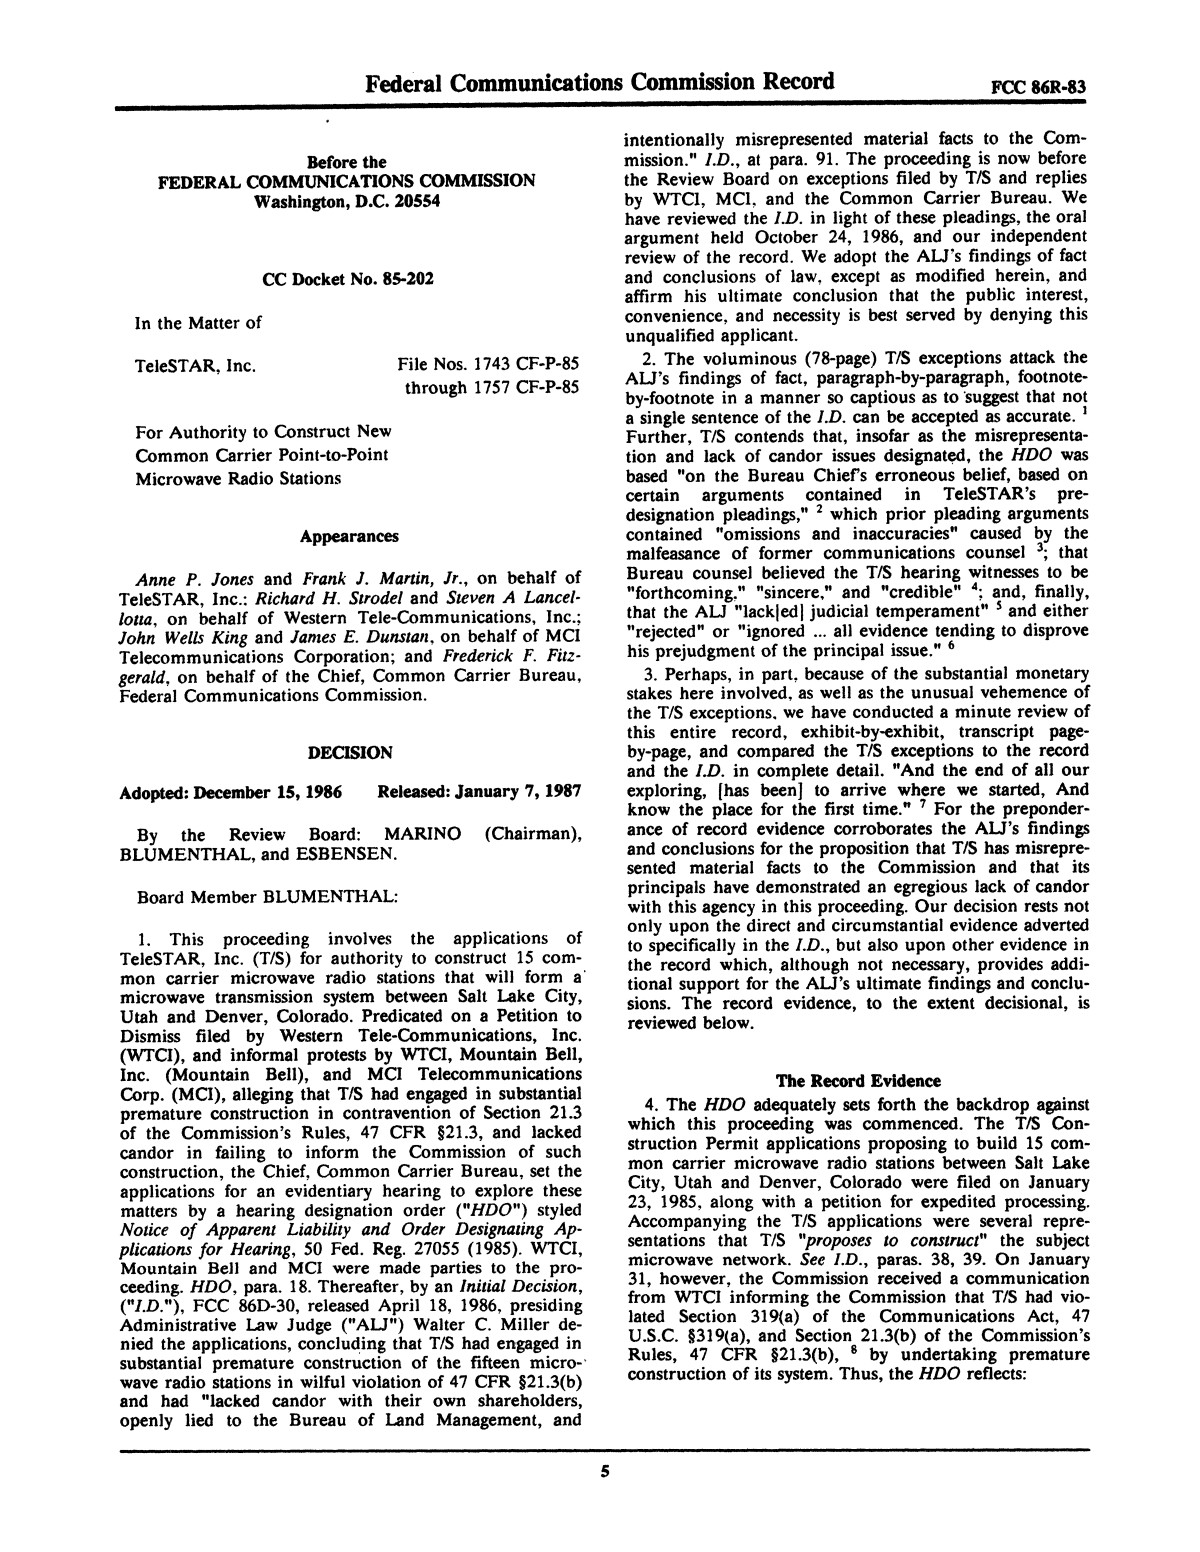 FCC Record, Volume 2, No. 1, Pages 1 to 409, January 5 - January 16, 1987                                                                                                      5